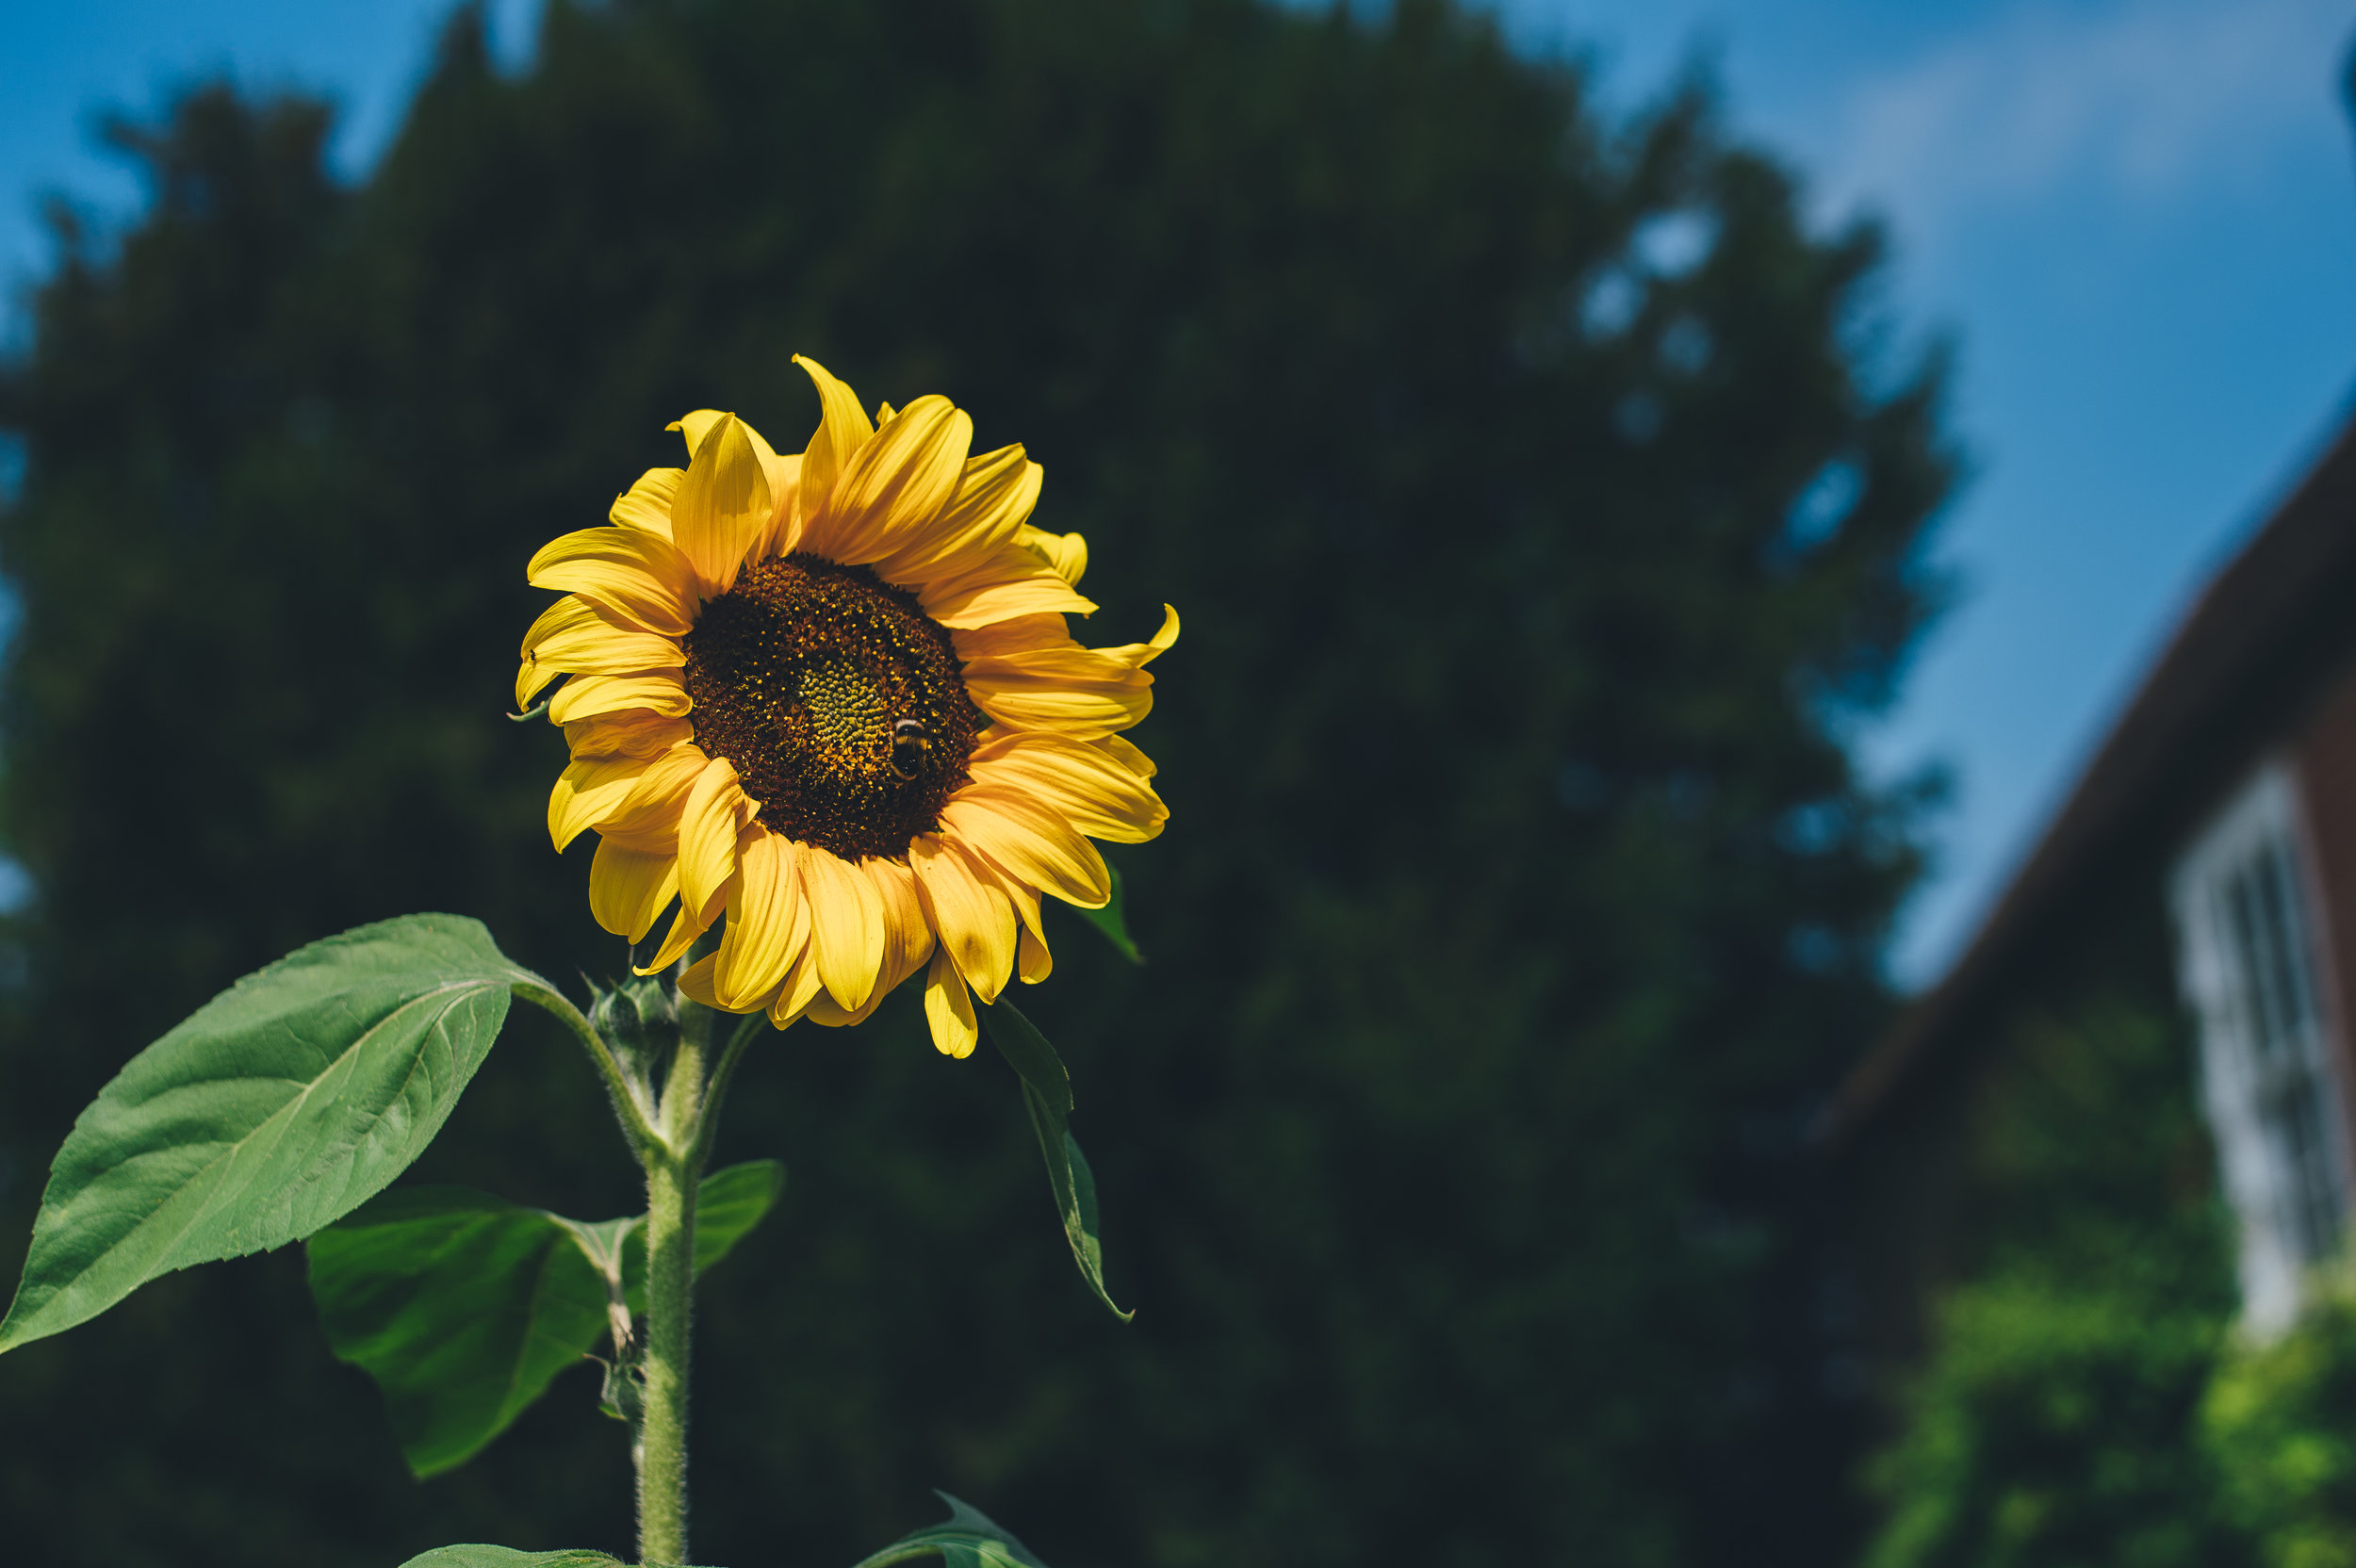 Sunflowers available! -